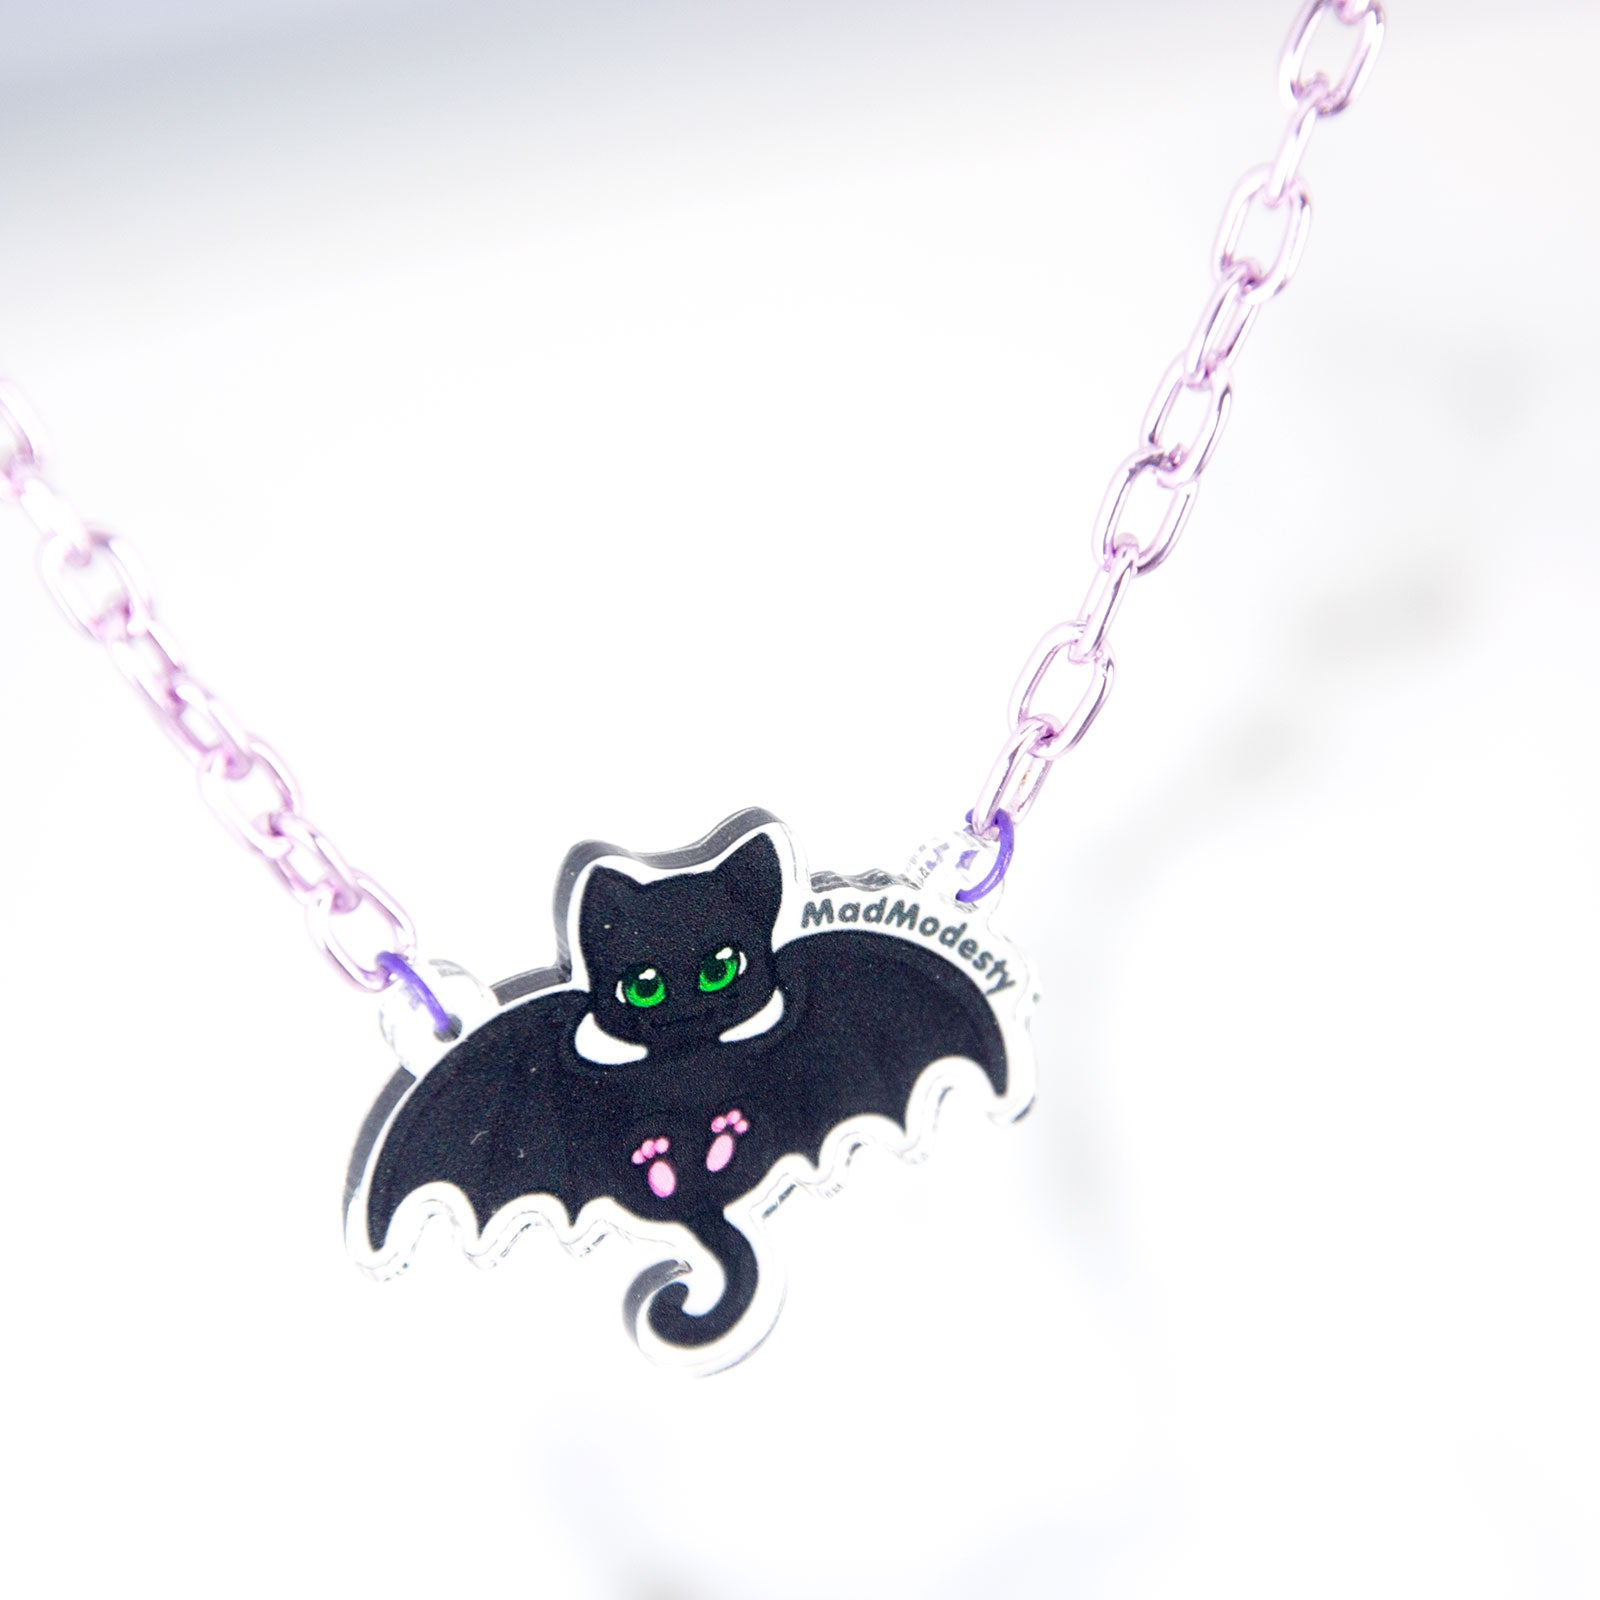 Pastel goth bat cat purple necklace - MadModesty